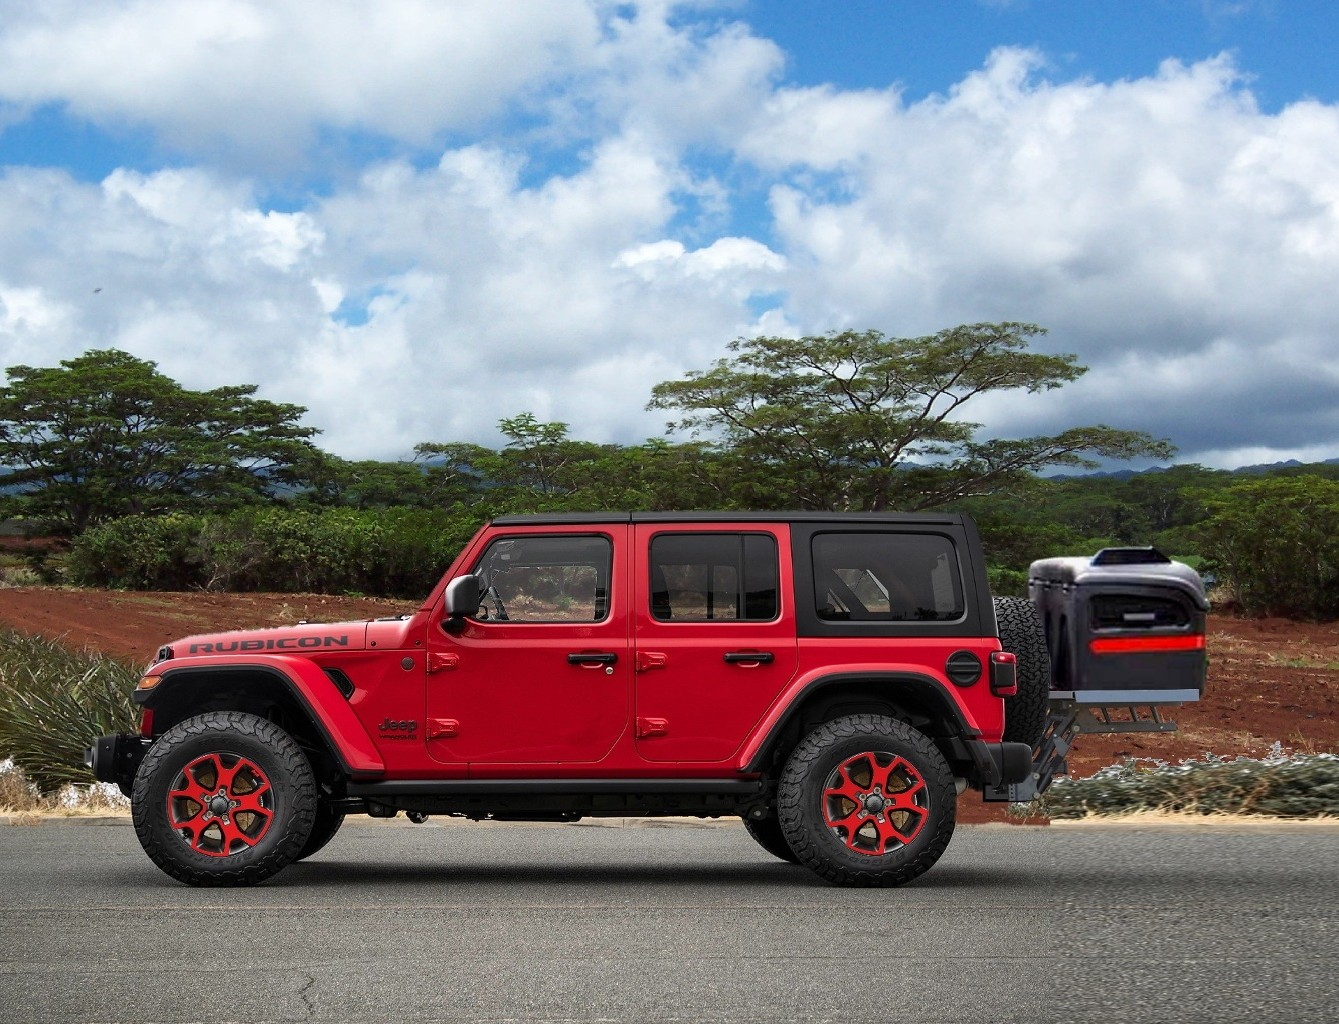 Jeep cargo carrier lift by Hydralift